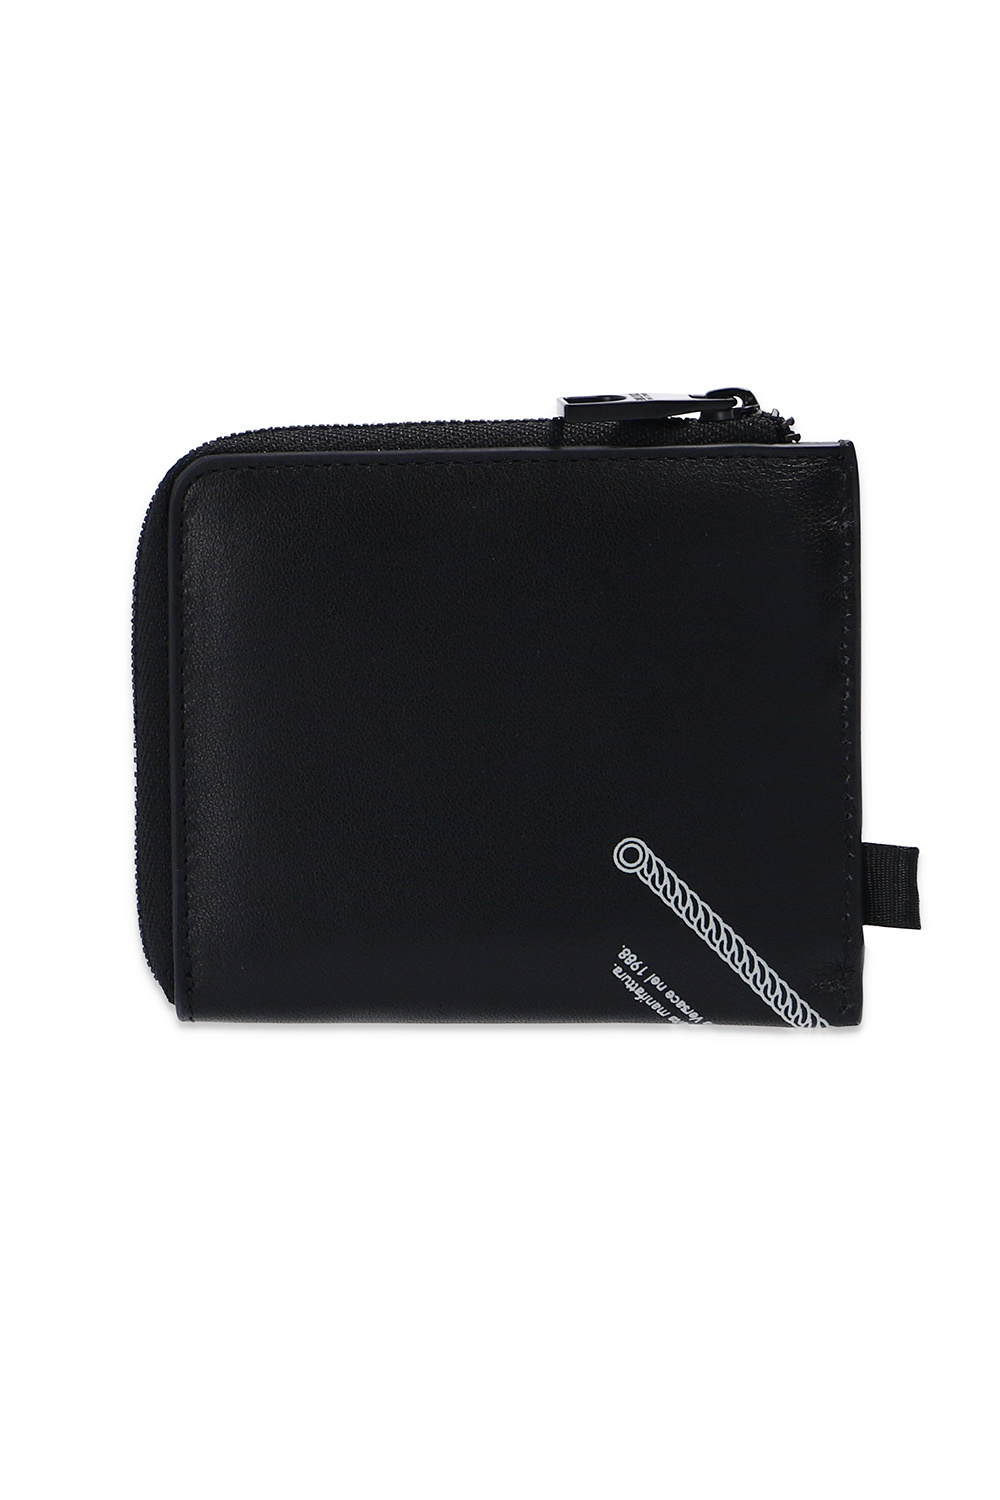 Versace Jeans Couture Wallet on chain